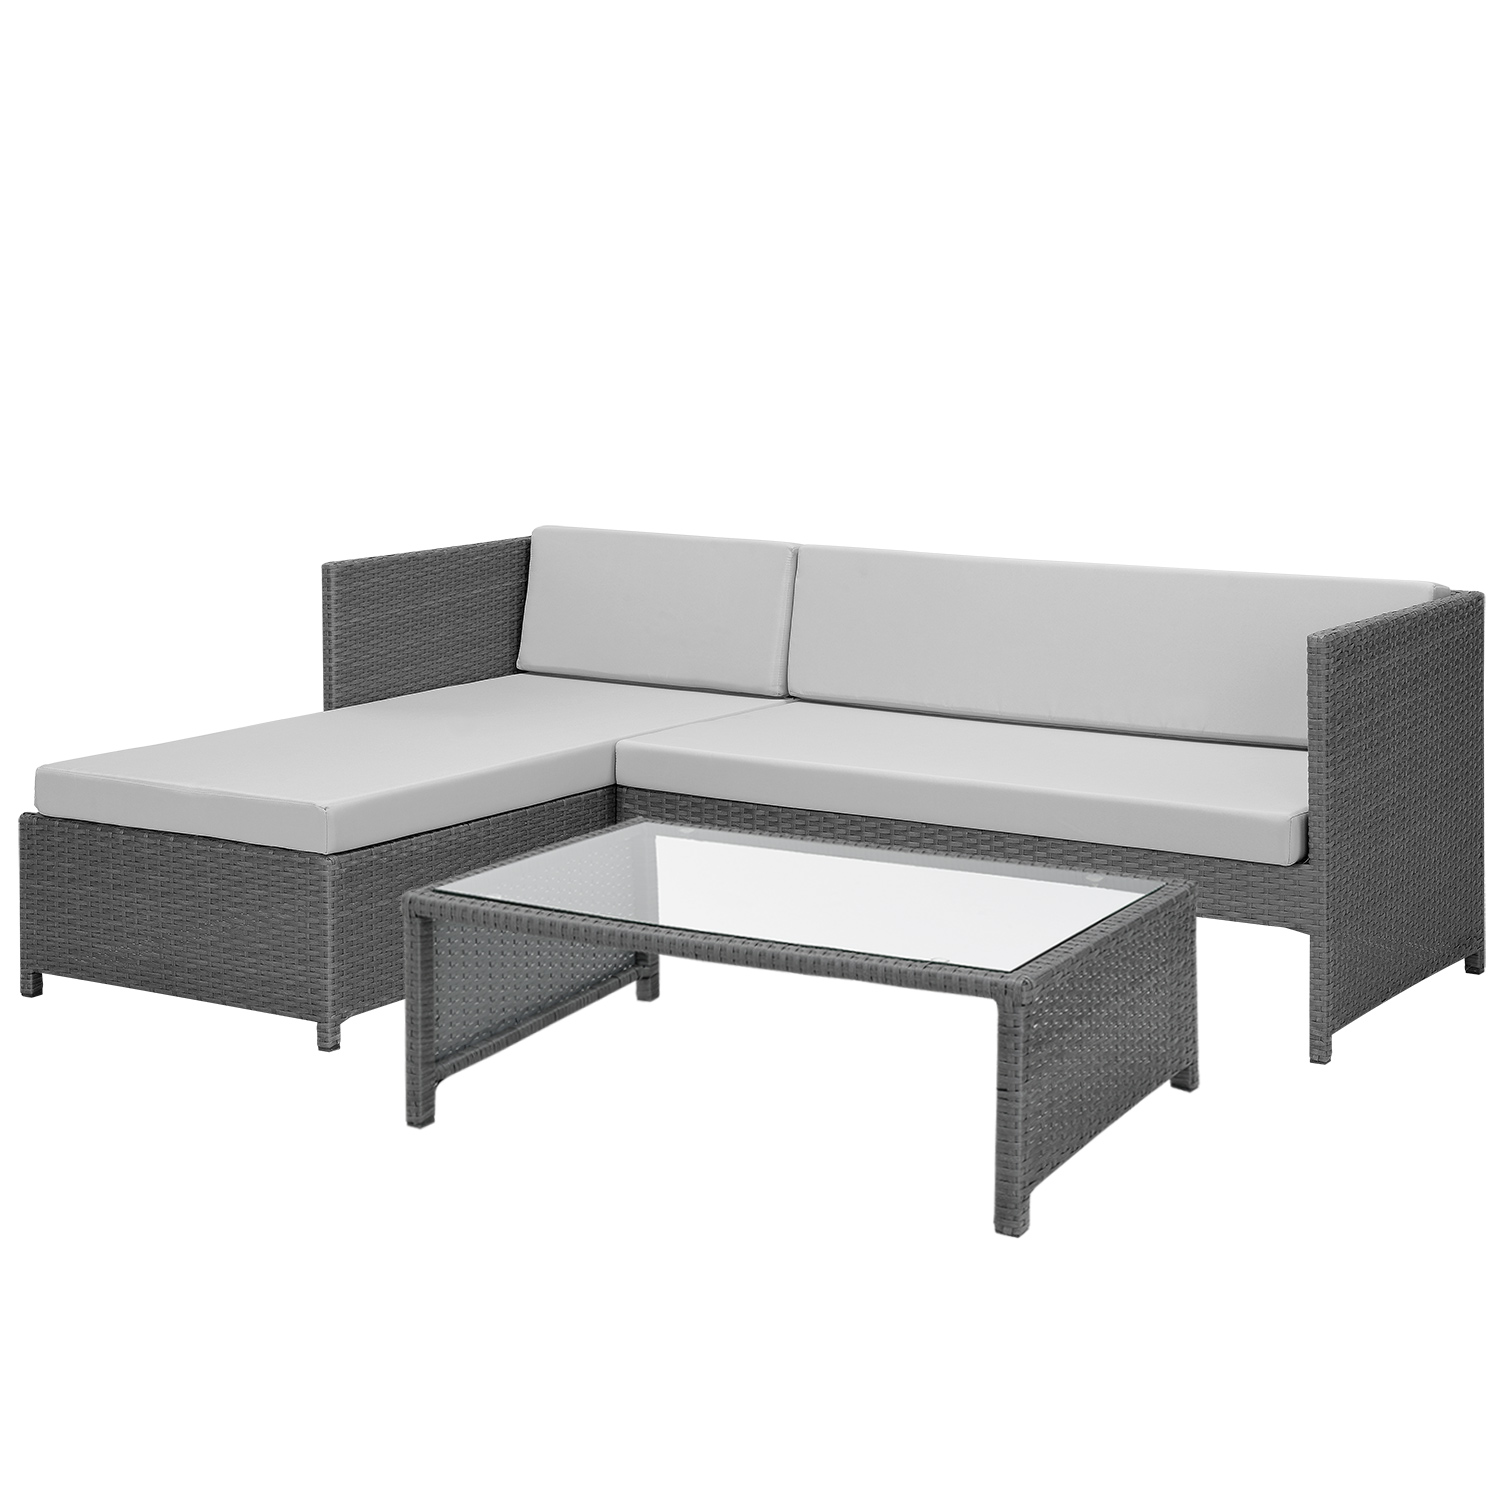 casa pro poly rattan lounge corner sofa table garden set polyrattan furniture ebay